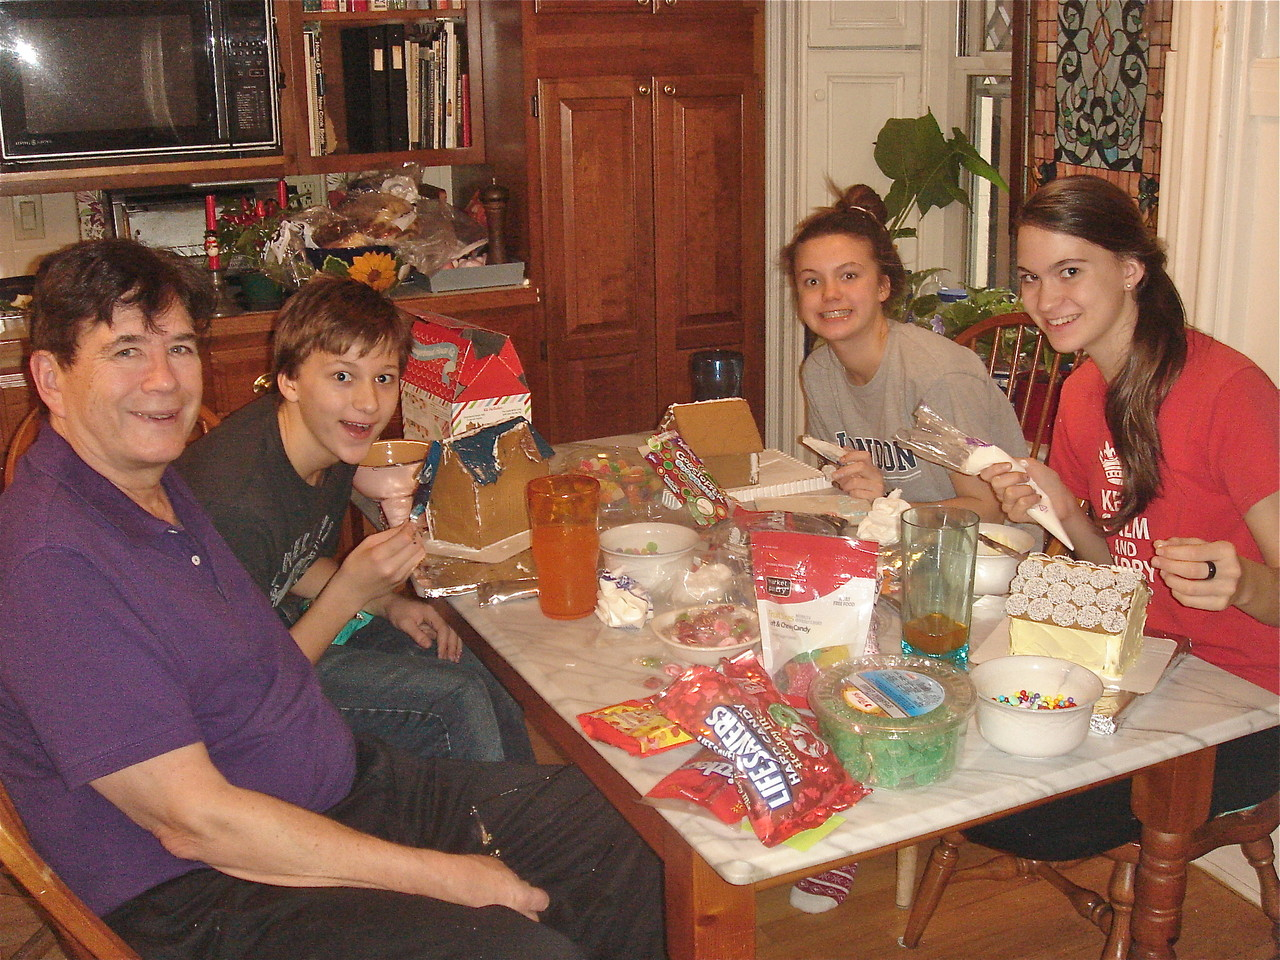 John, Jack, Kate, & Ellie make gingerbread houses.